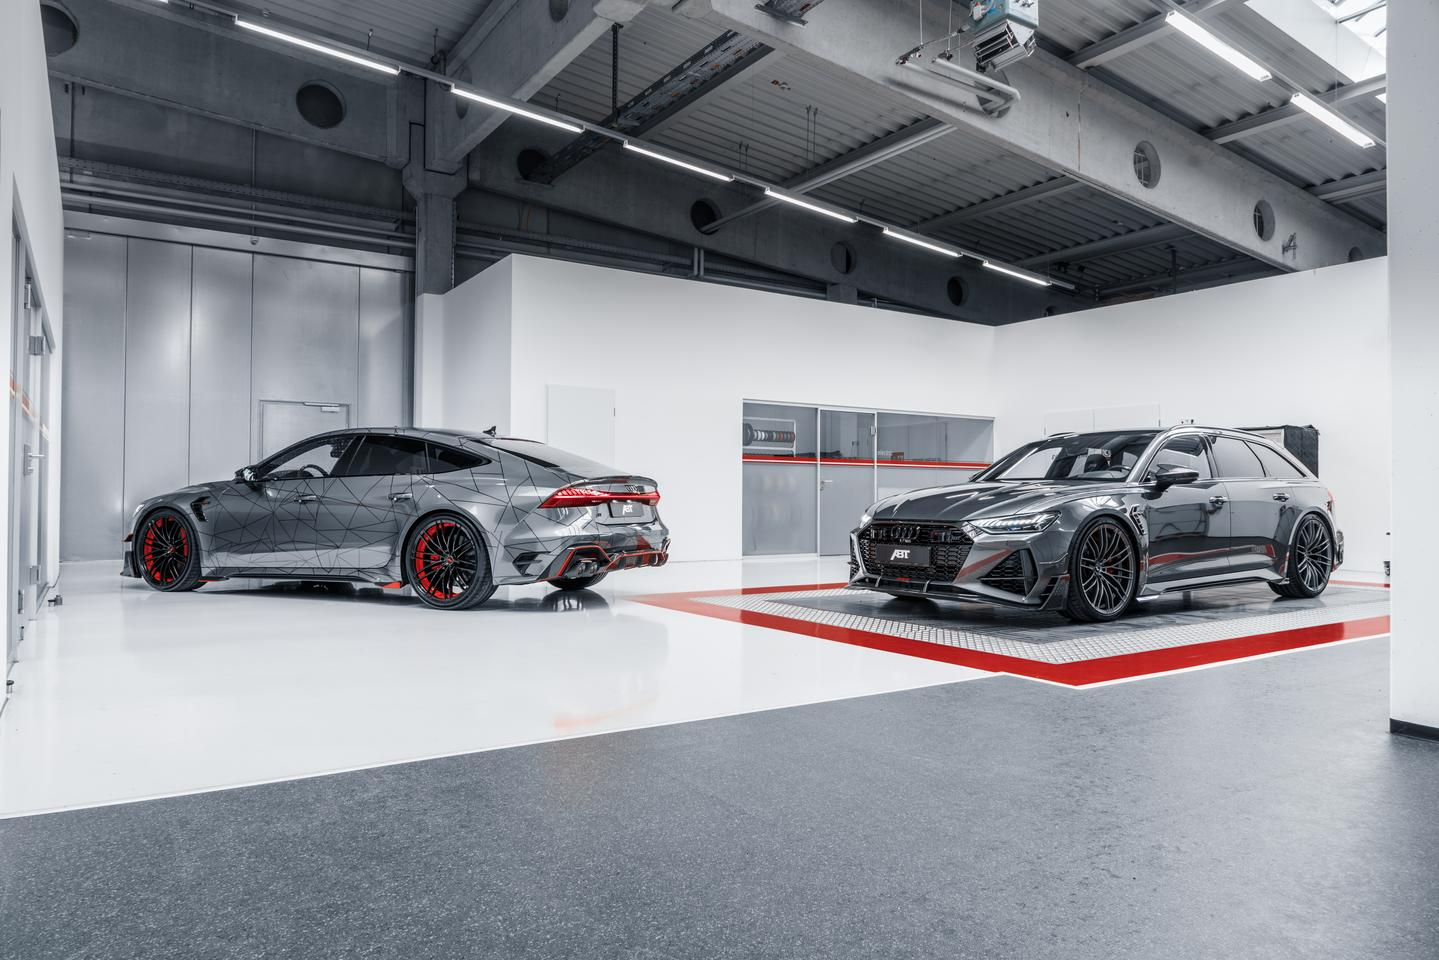 The Audi ABT RS7-R and RS6-R both offer 740 hp (544 kW) and 920 Nm performance and a four-year, 100,000-mile warranty